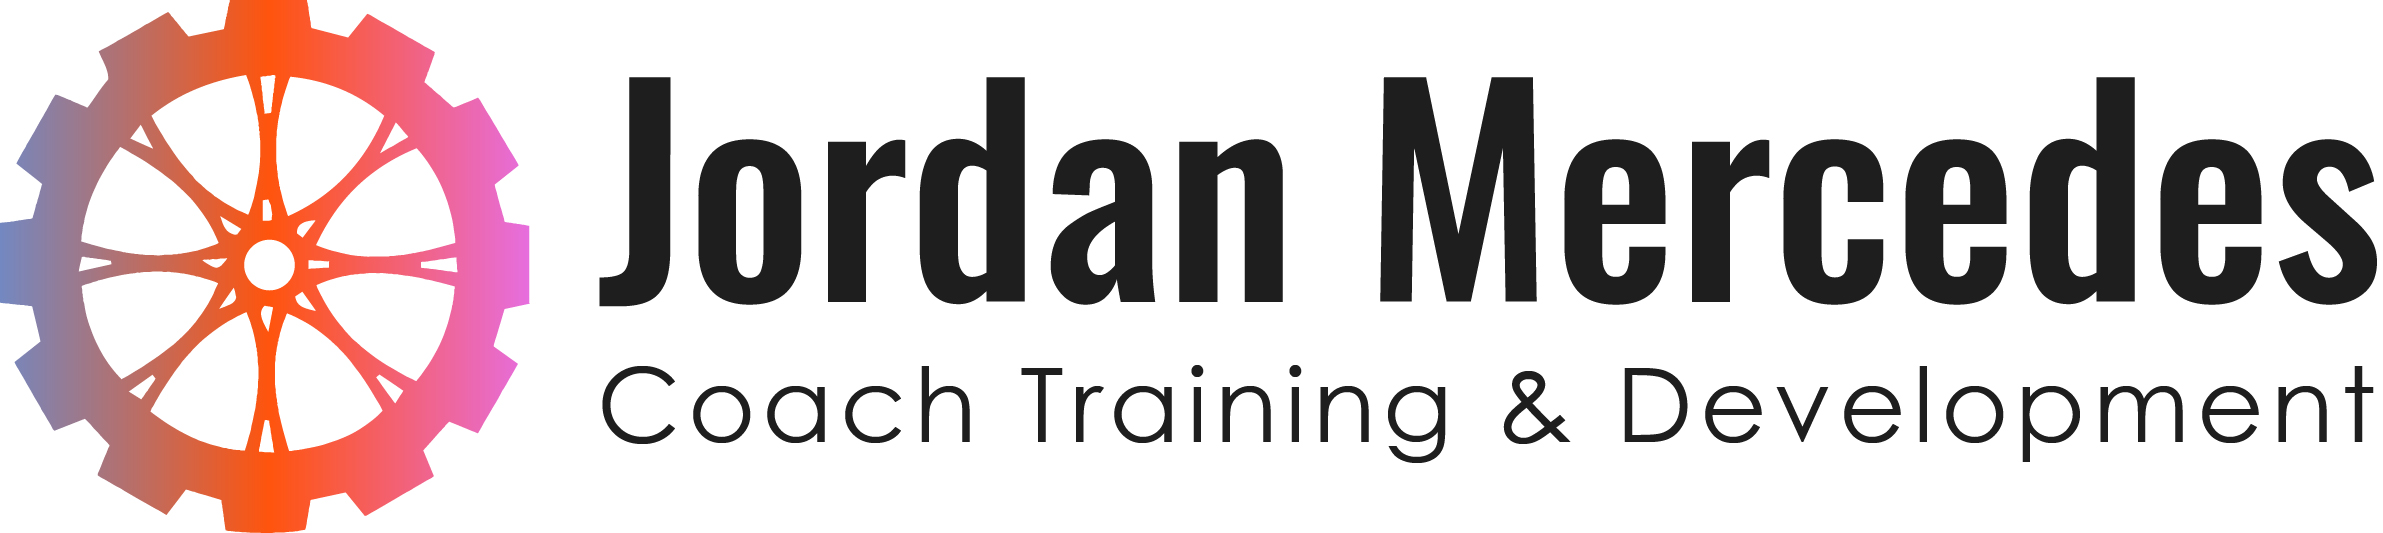 JORDAN MERCEDES | Professional Coach Training and Development